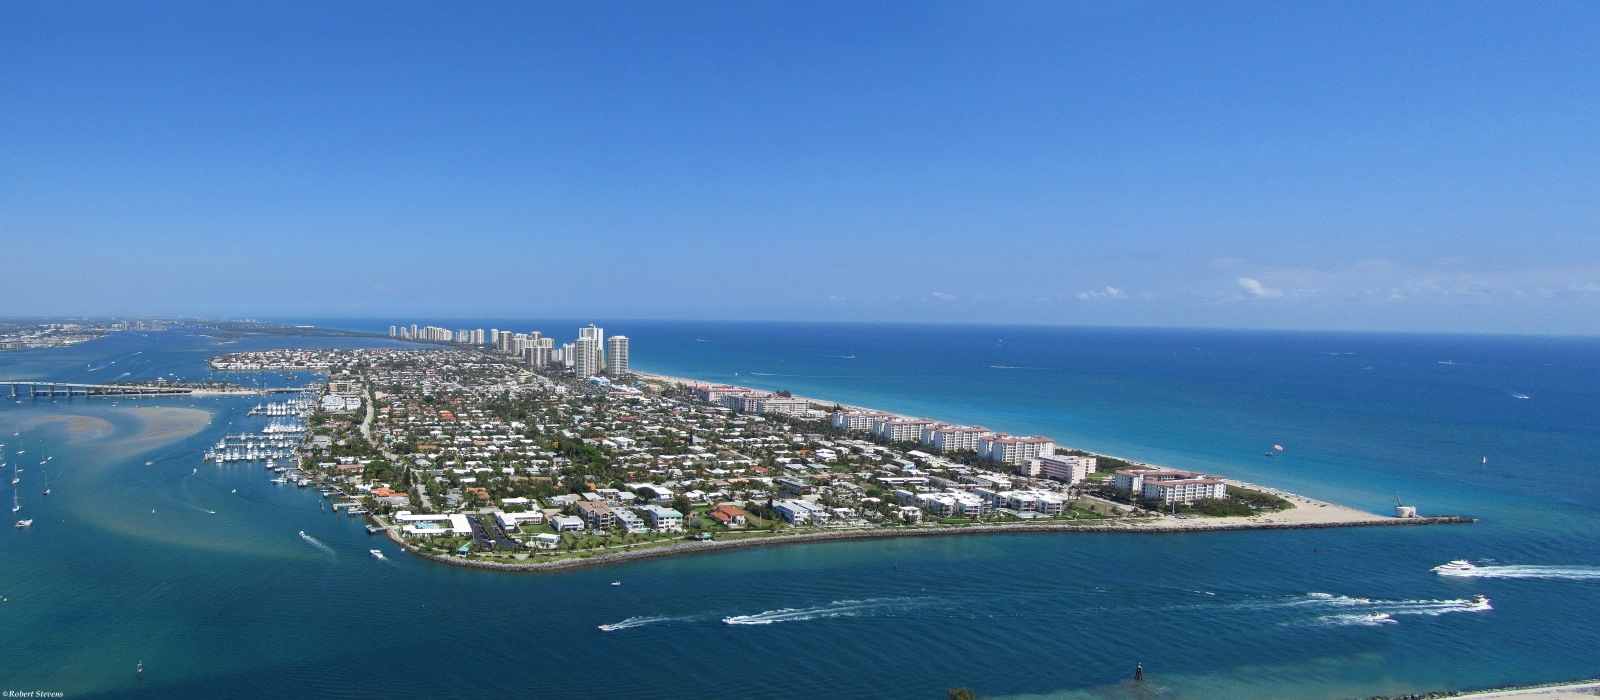 Singer Island Florida Attractions